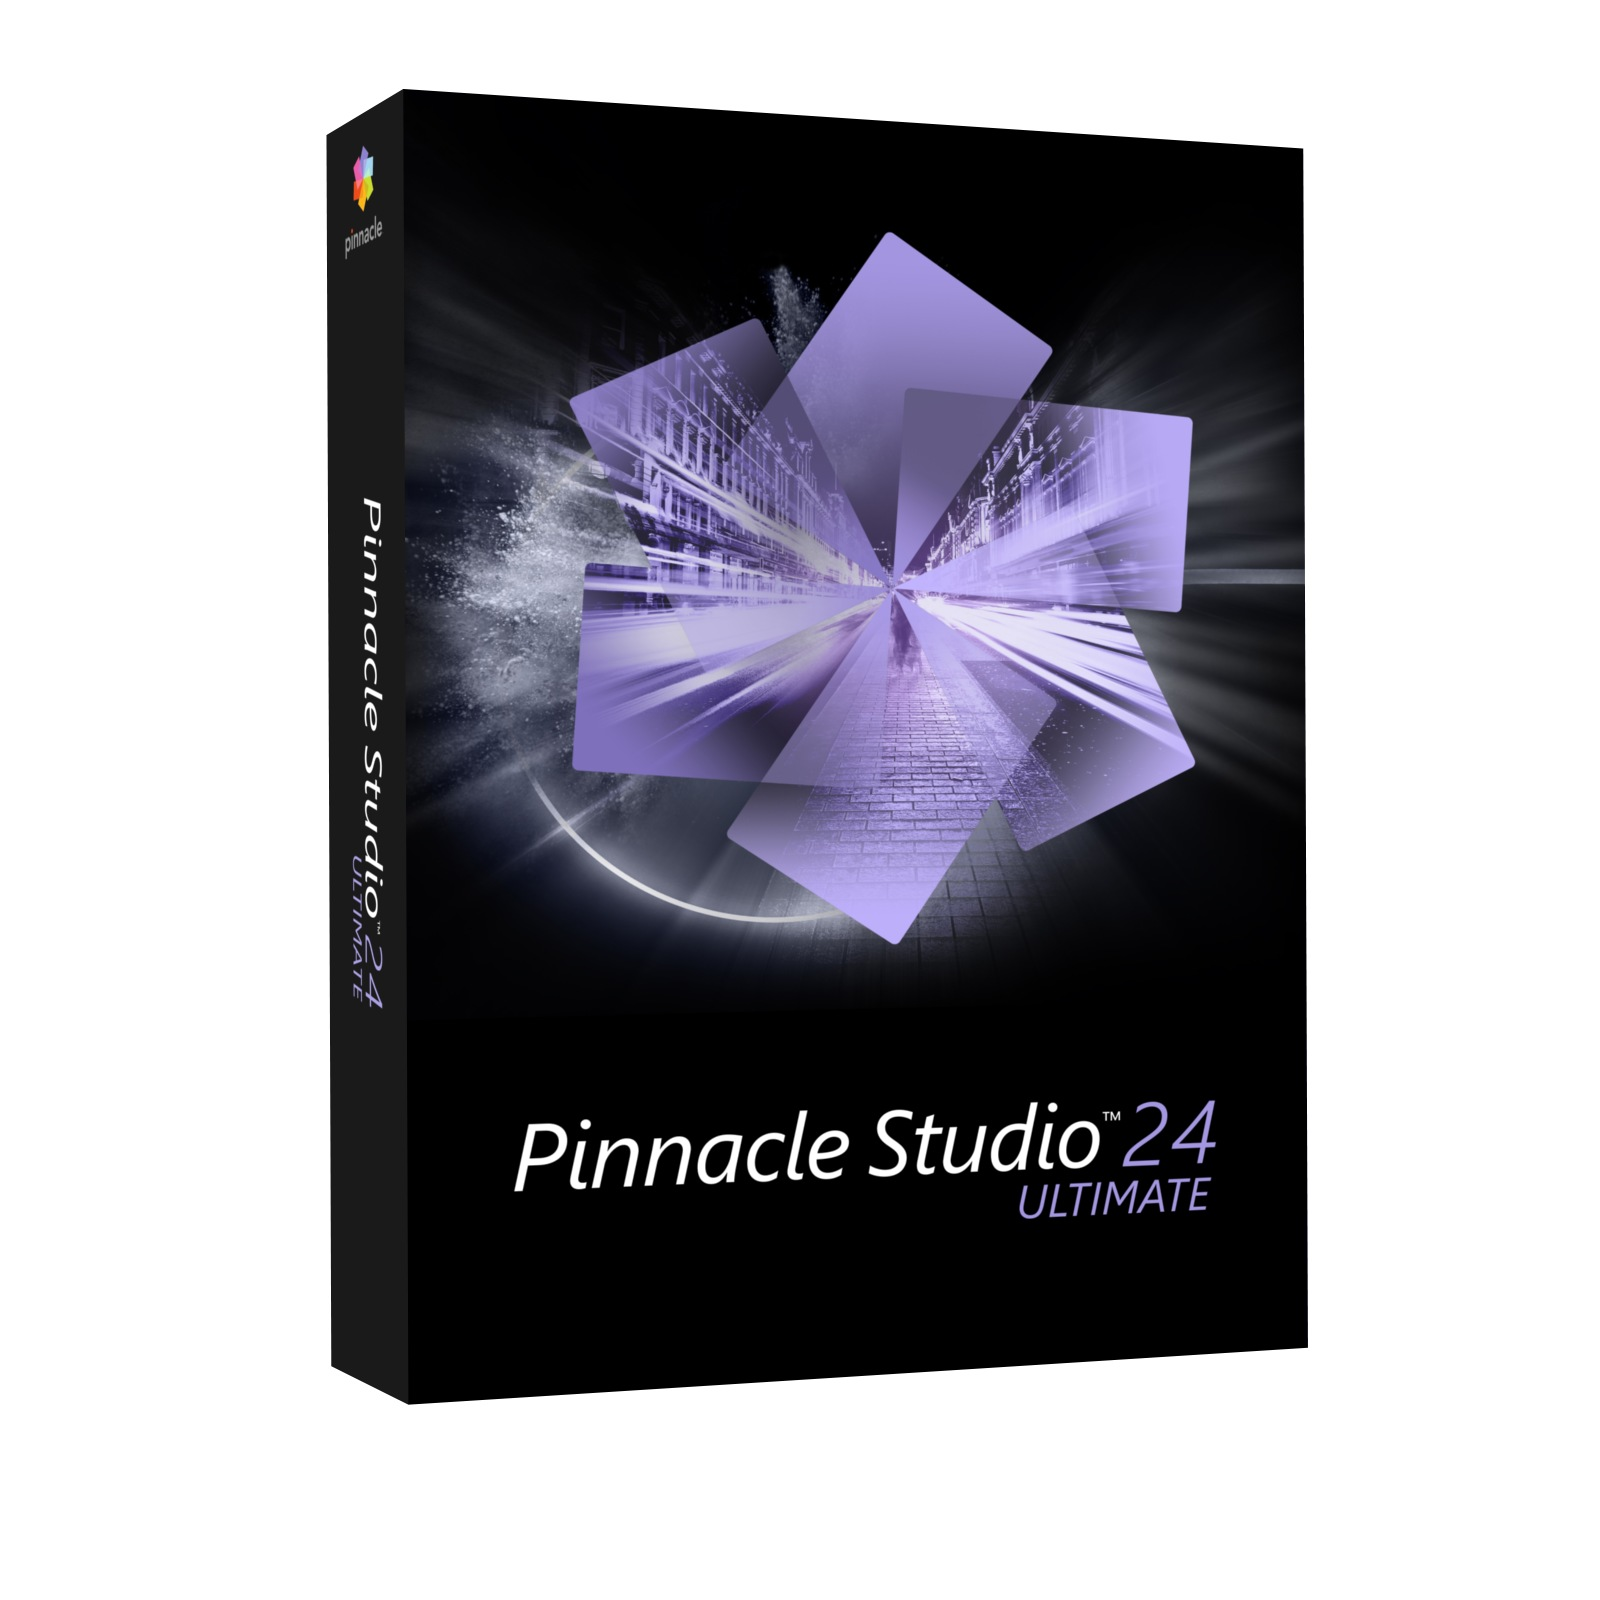 Pinnacle Studio 24 Ultimate (box) CZ